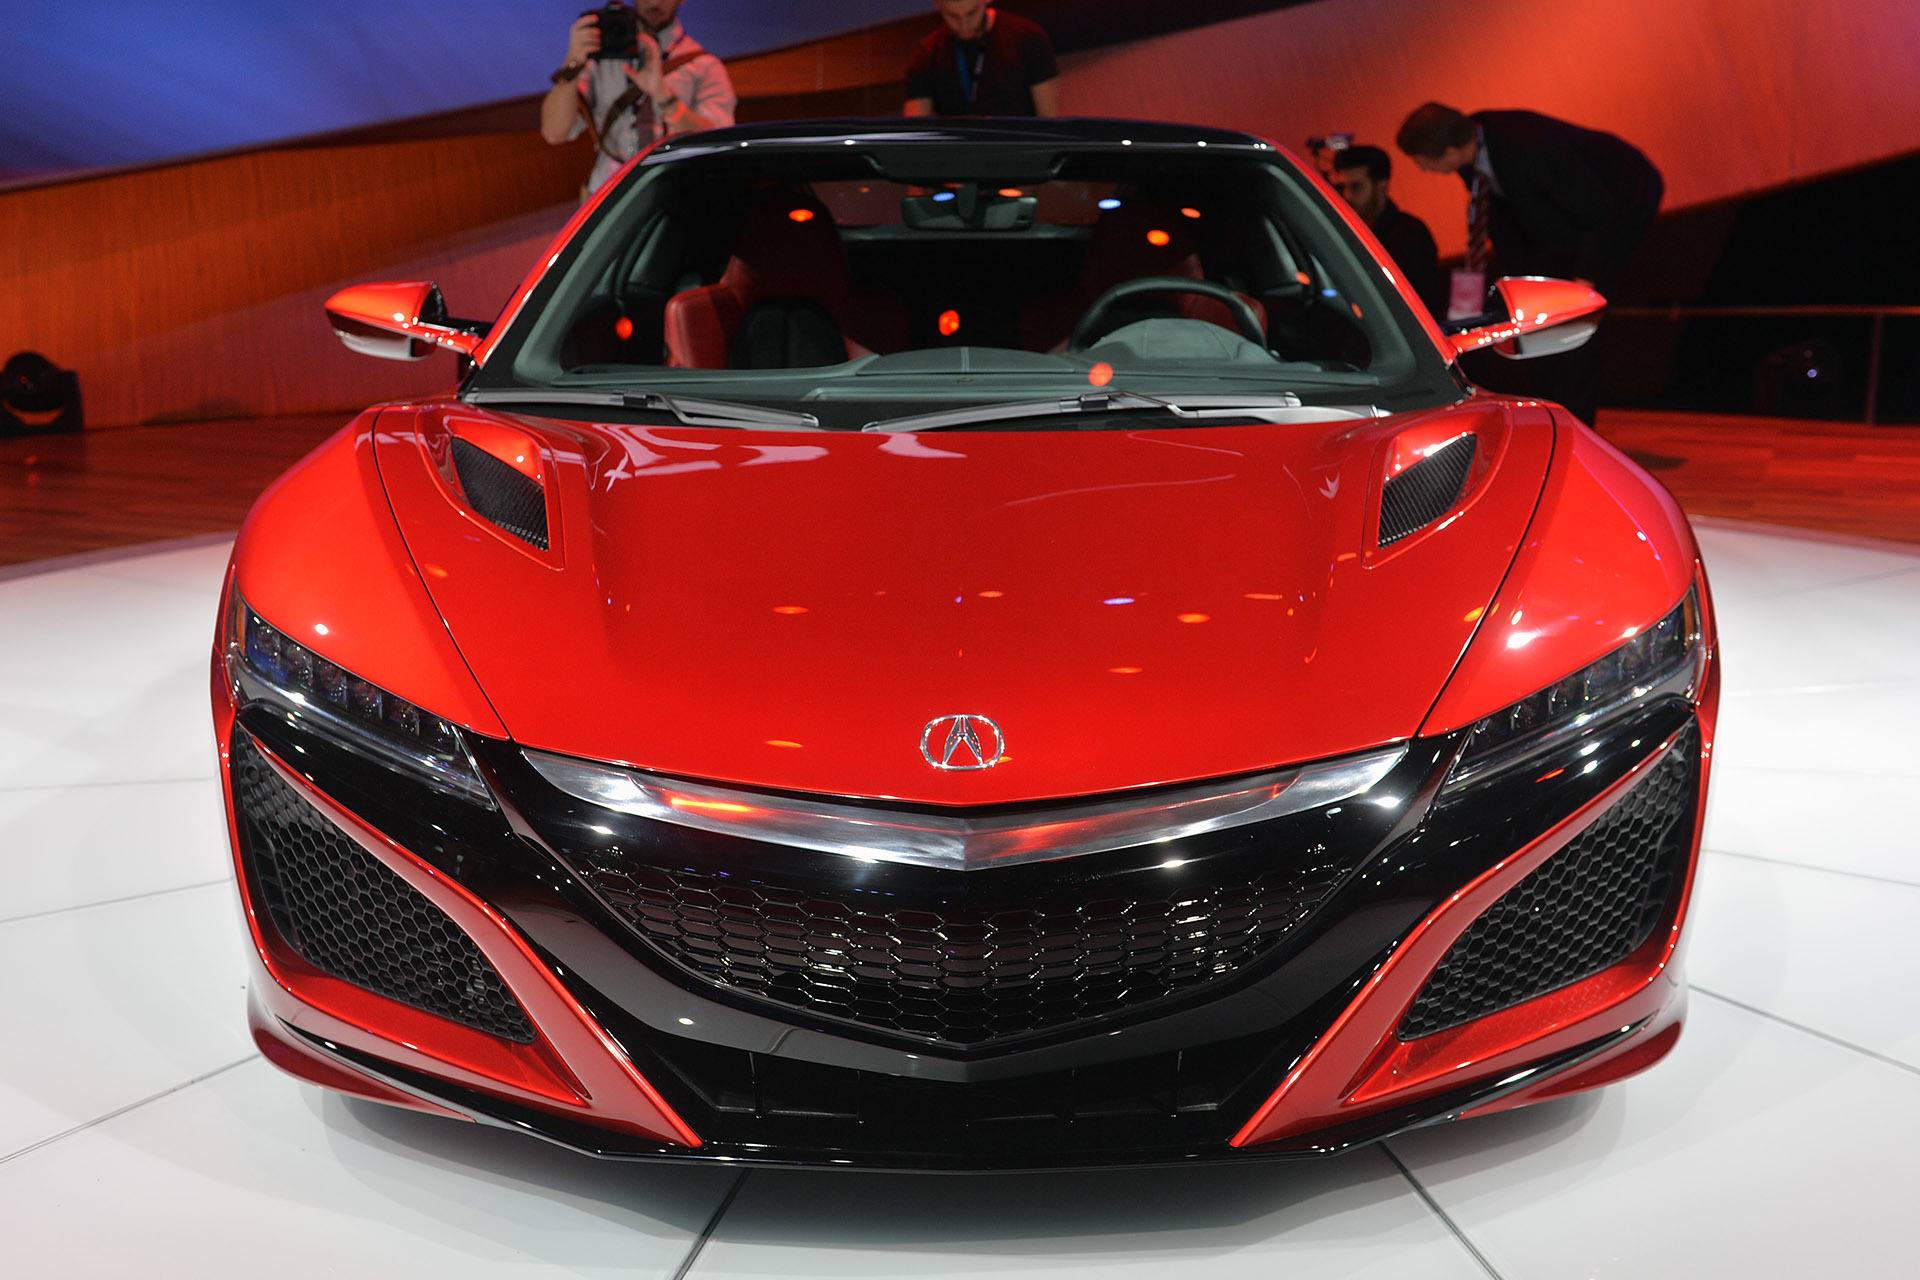 acura nsx 2016 dark cars wallpapers. Black Bedroom Furniture Sets. Home Design Ideas